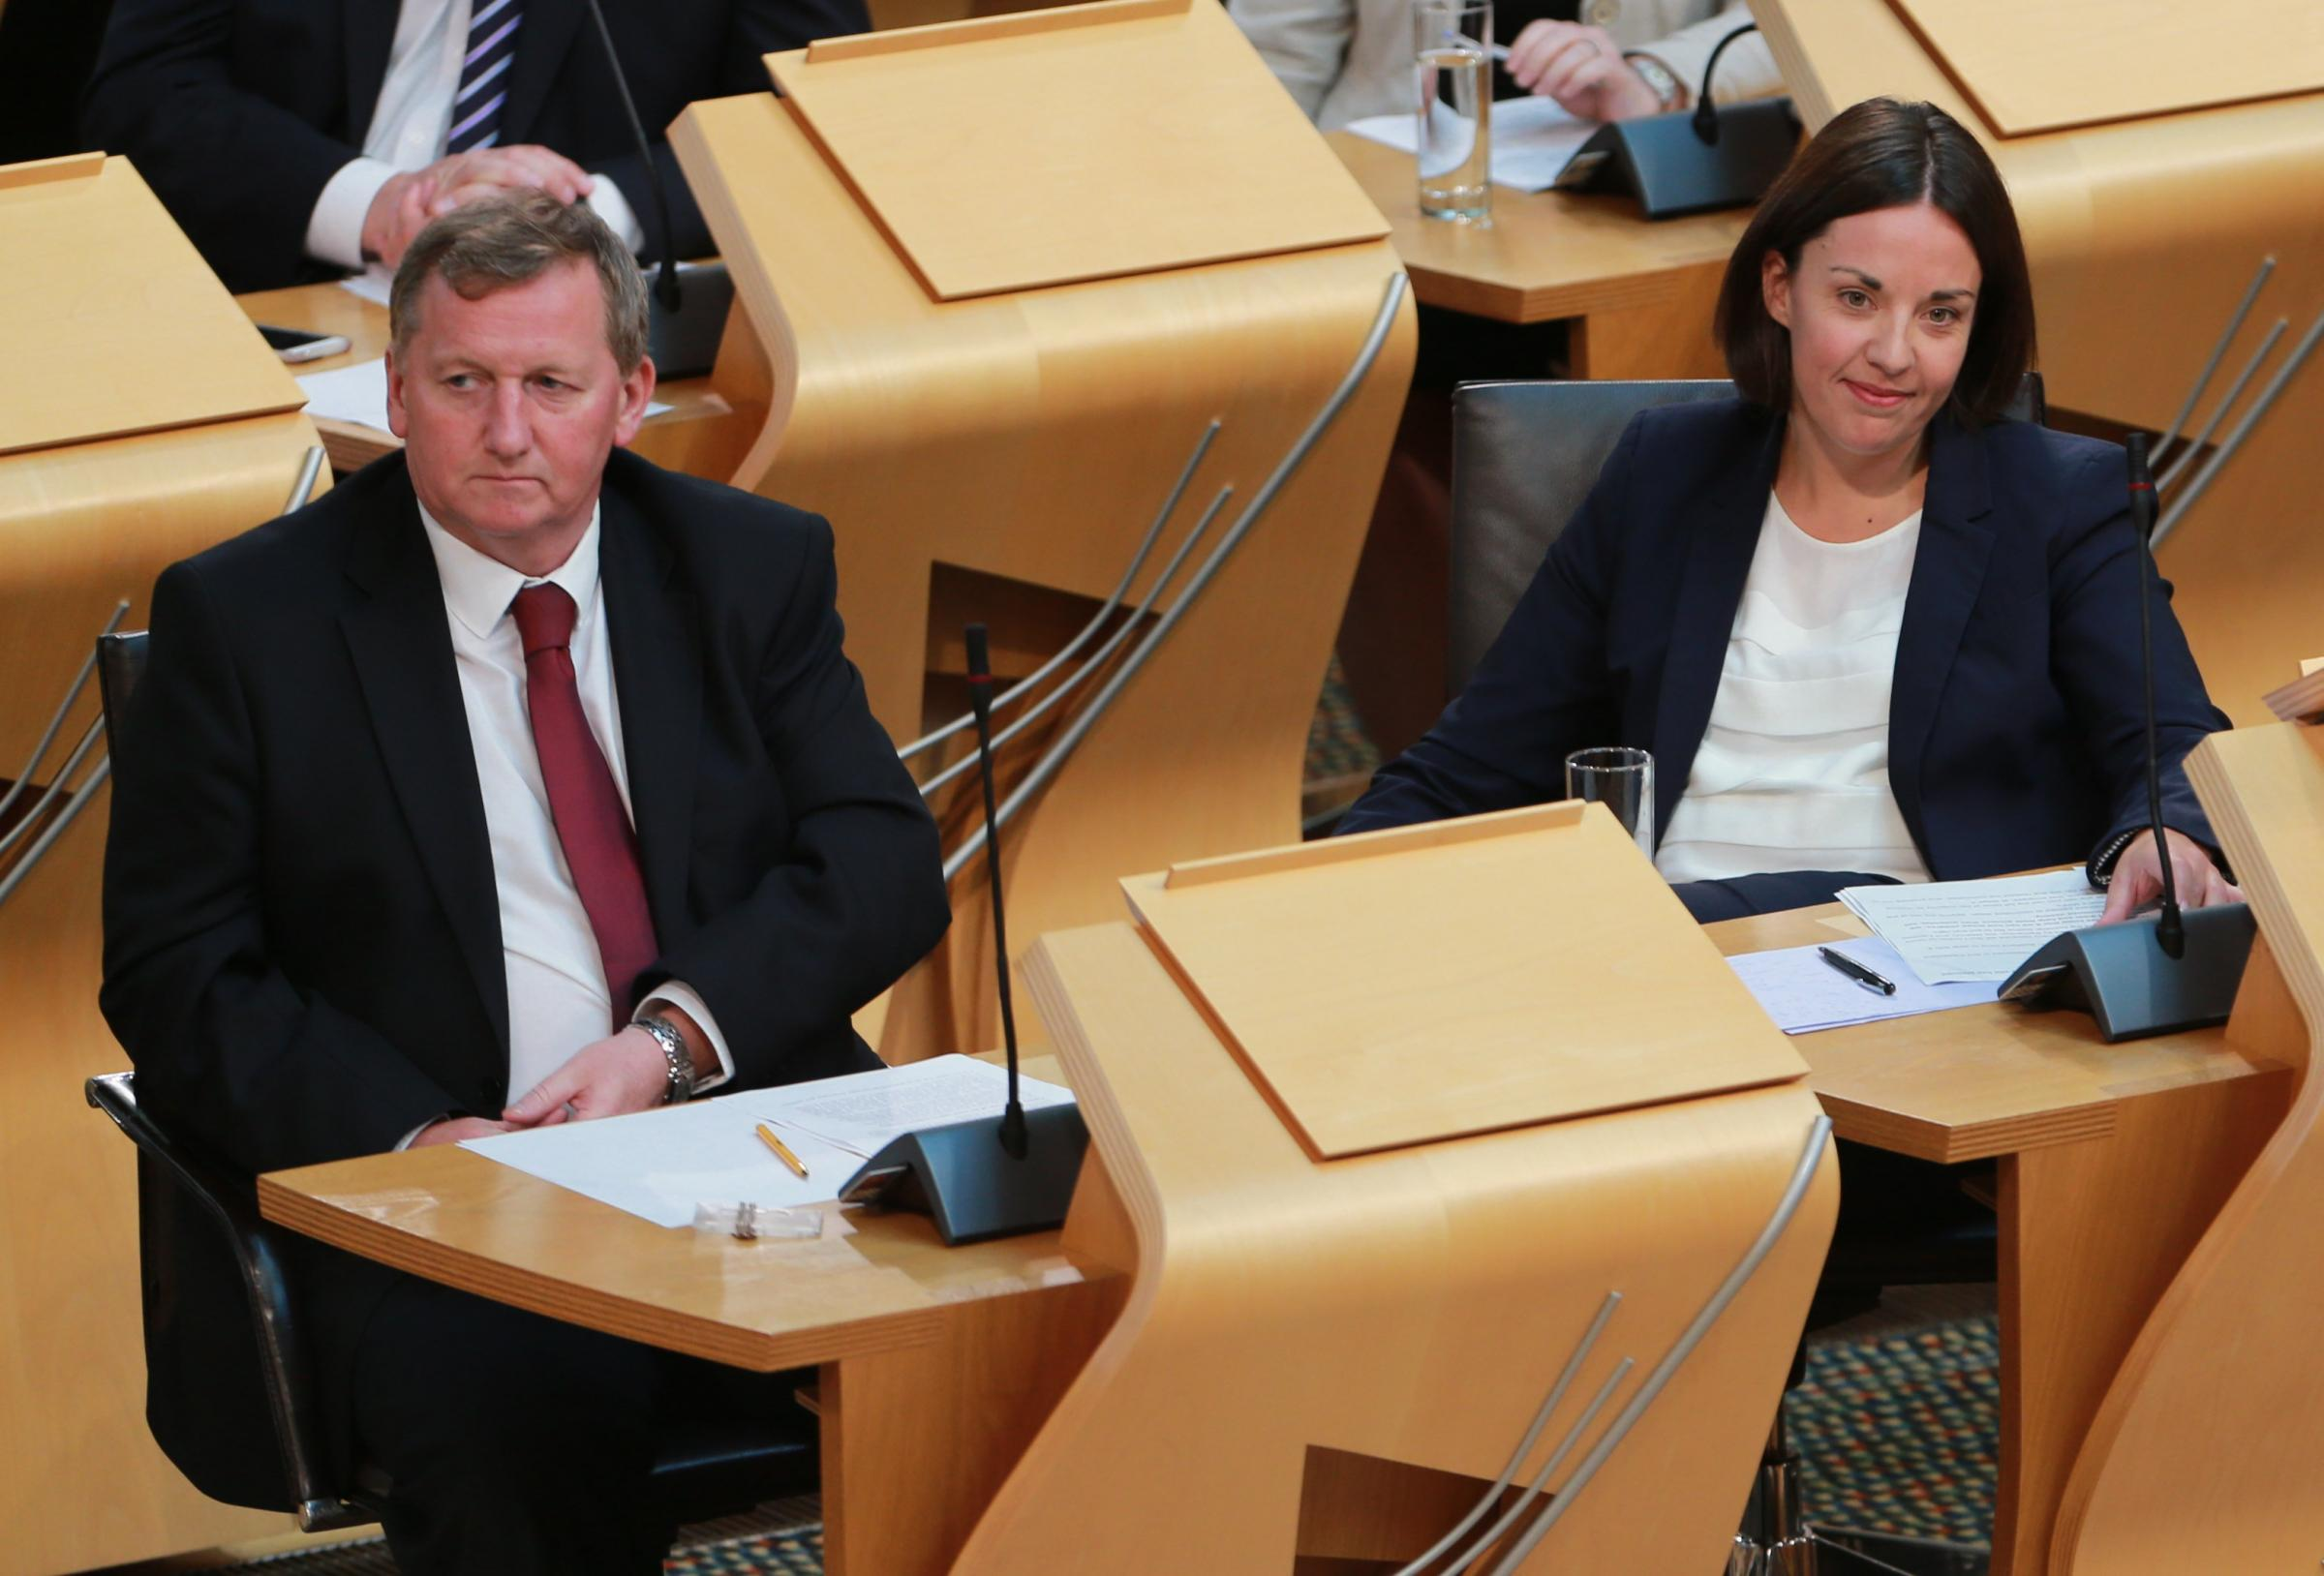 Alex Rowley and Kezia Dugdale